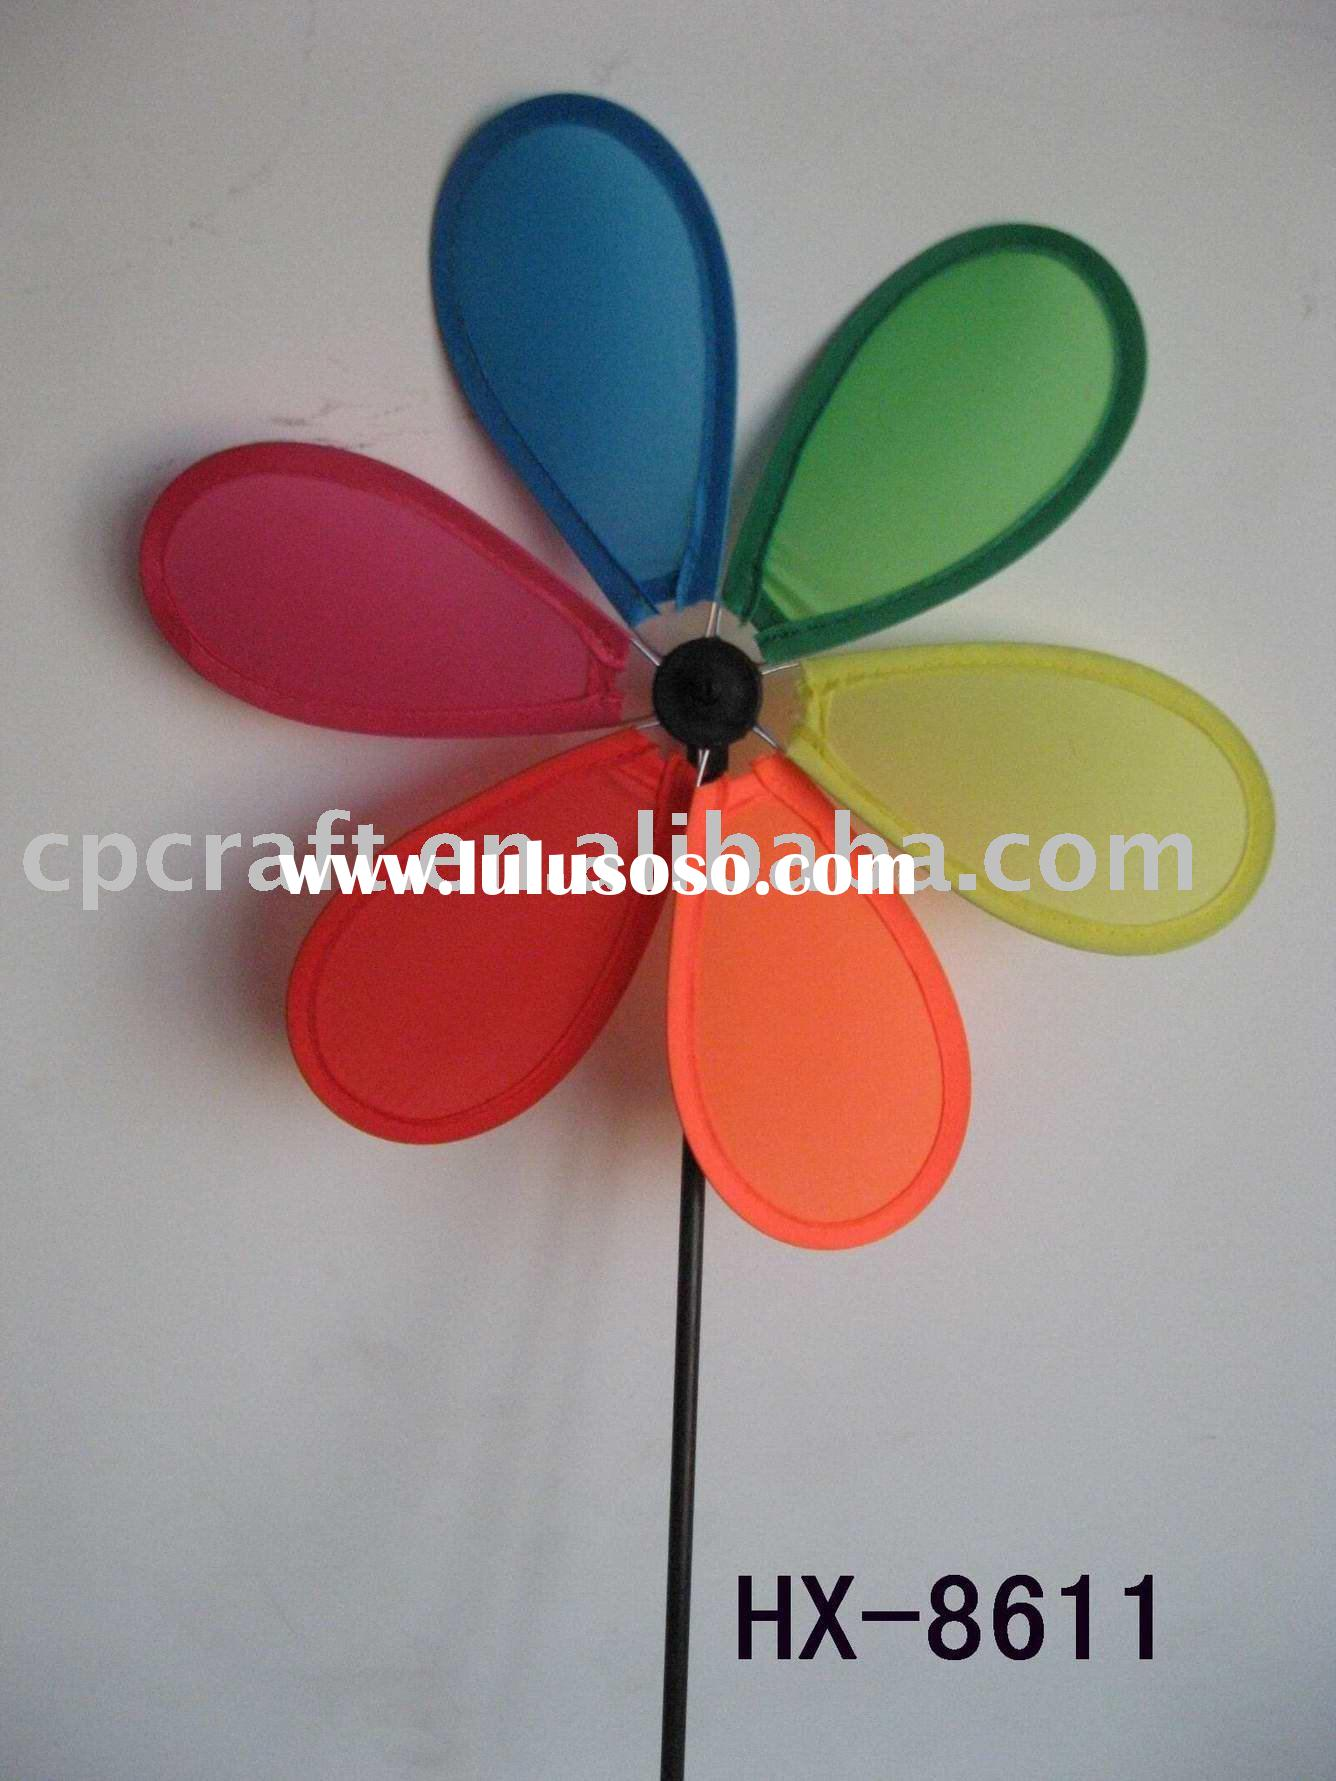 Craft art garden outdoor decoration wind spinner pinwheel nylon windmill cloth wind wheel